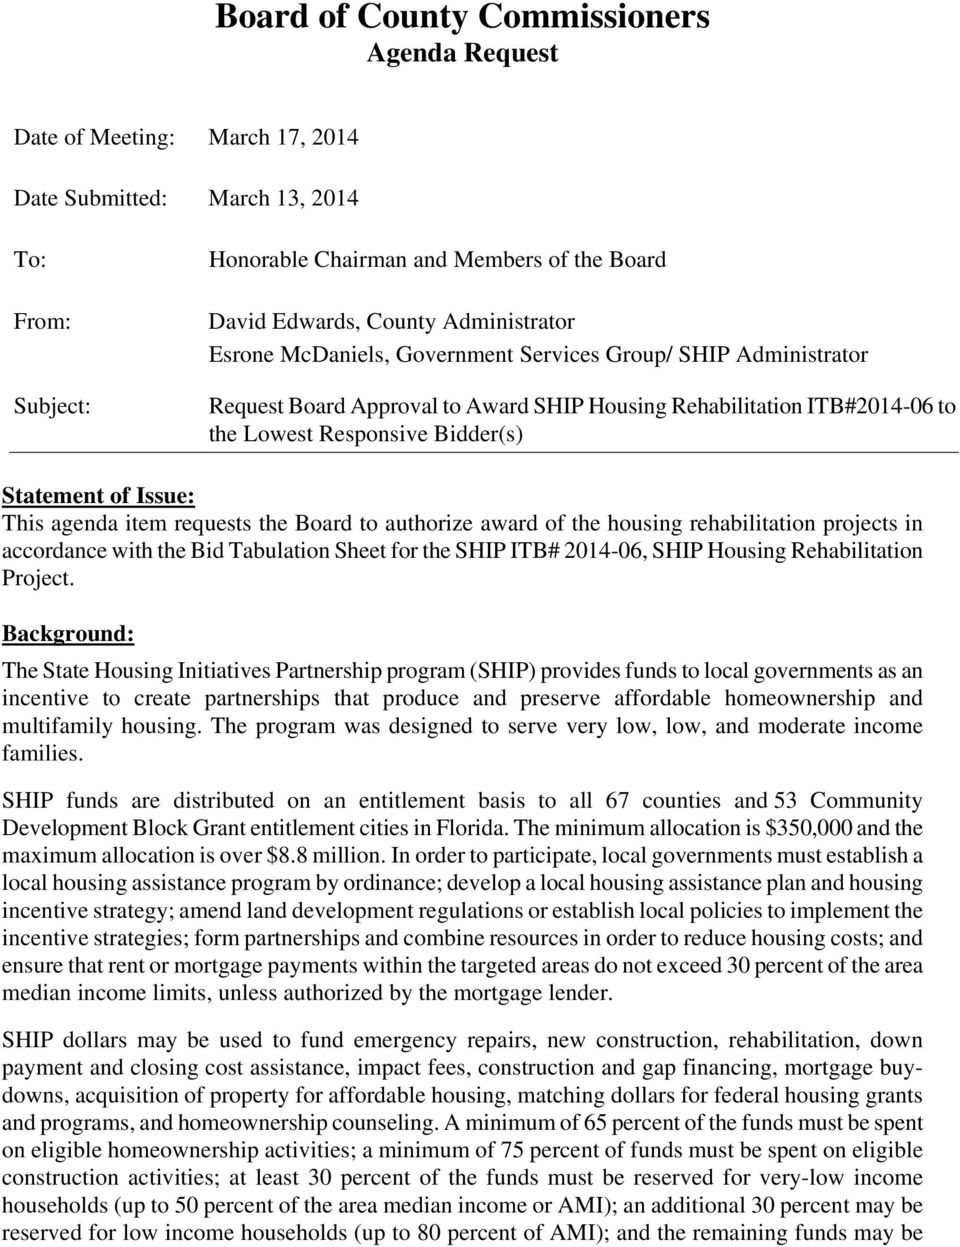 Issue: This agenda item requests the Board to authorize award of the housing rehabilitation projects in accordance with the Bid Tabulation Sheet for the SHIP ITB# 2014-06, SHIP Housing Rehabilitation